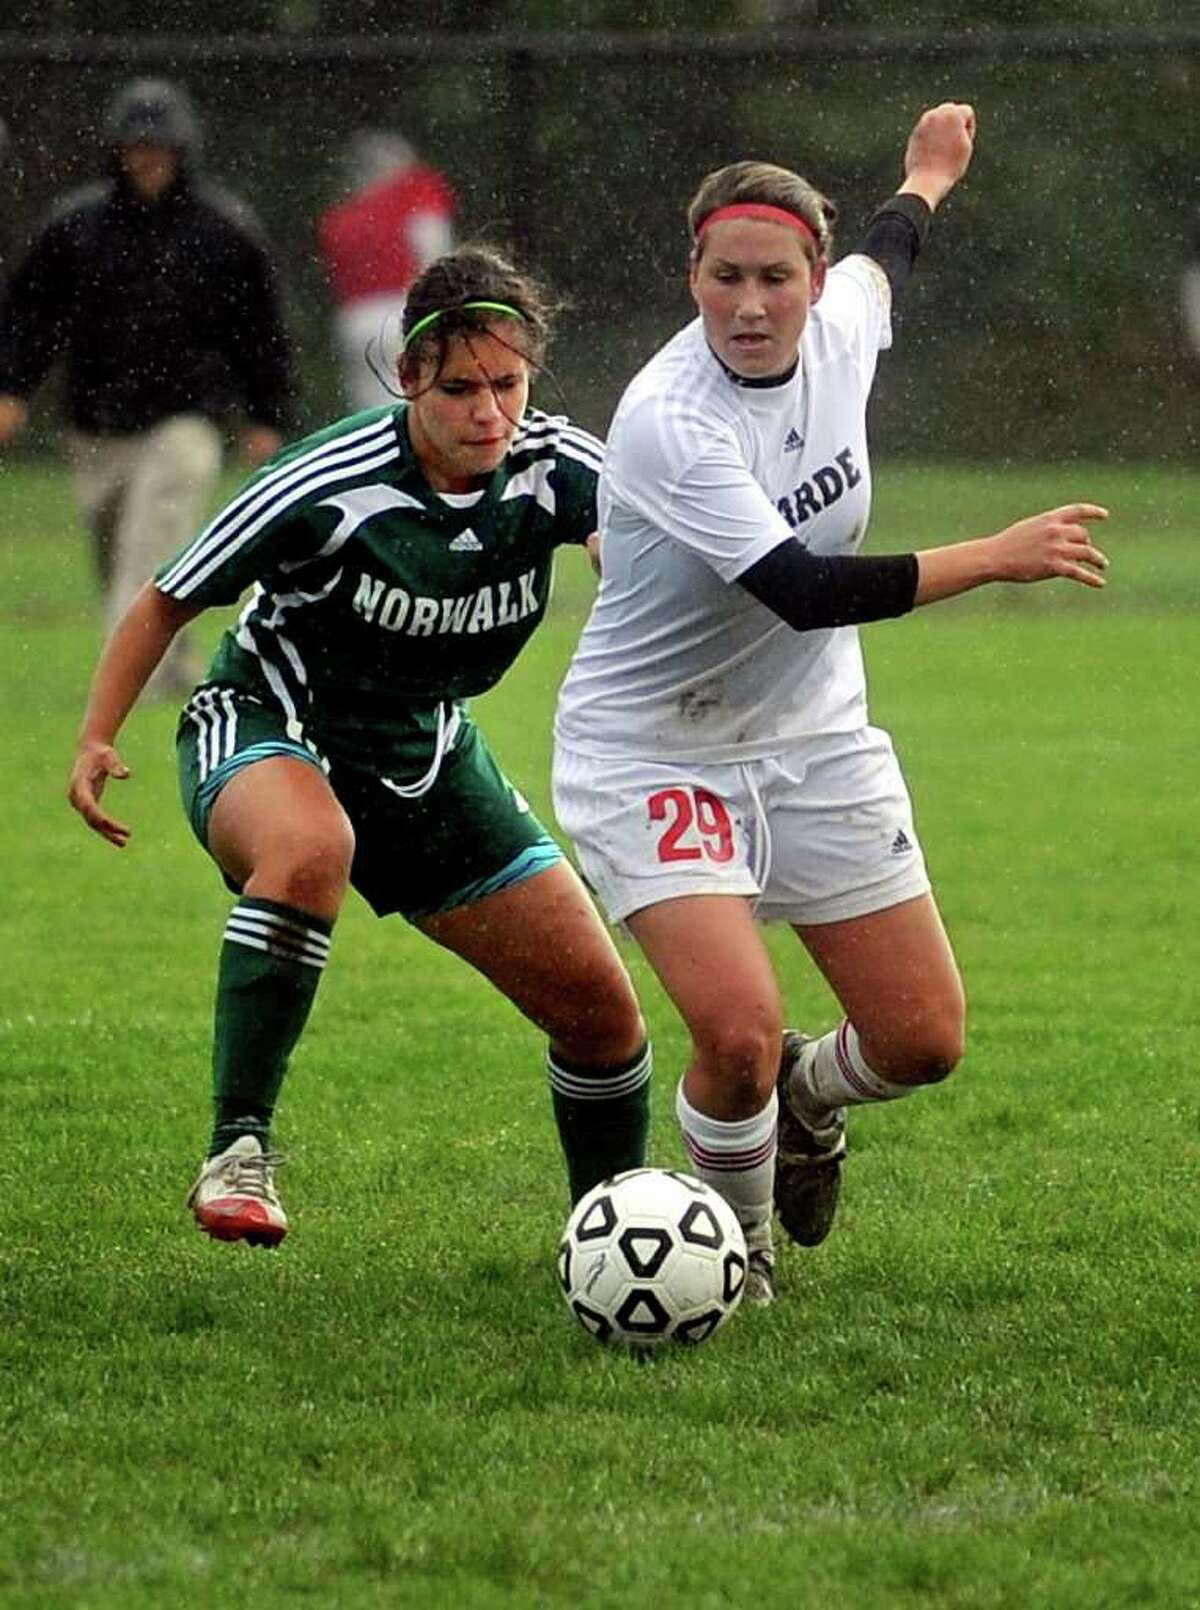 Norwalk's Melissa Rojo, left, and Fairfield Warde's Taylor Bargmann, right, compete for control of the ball during Tuesday's game at Fairfield Warde High School on October 5, 2010.